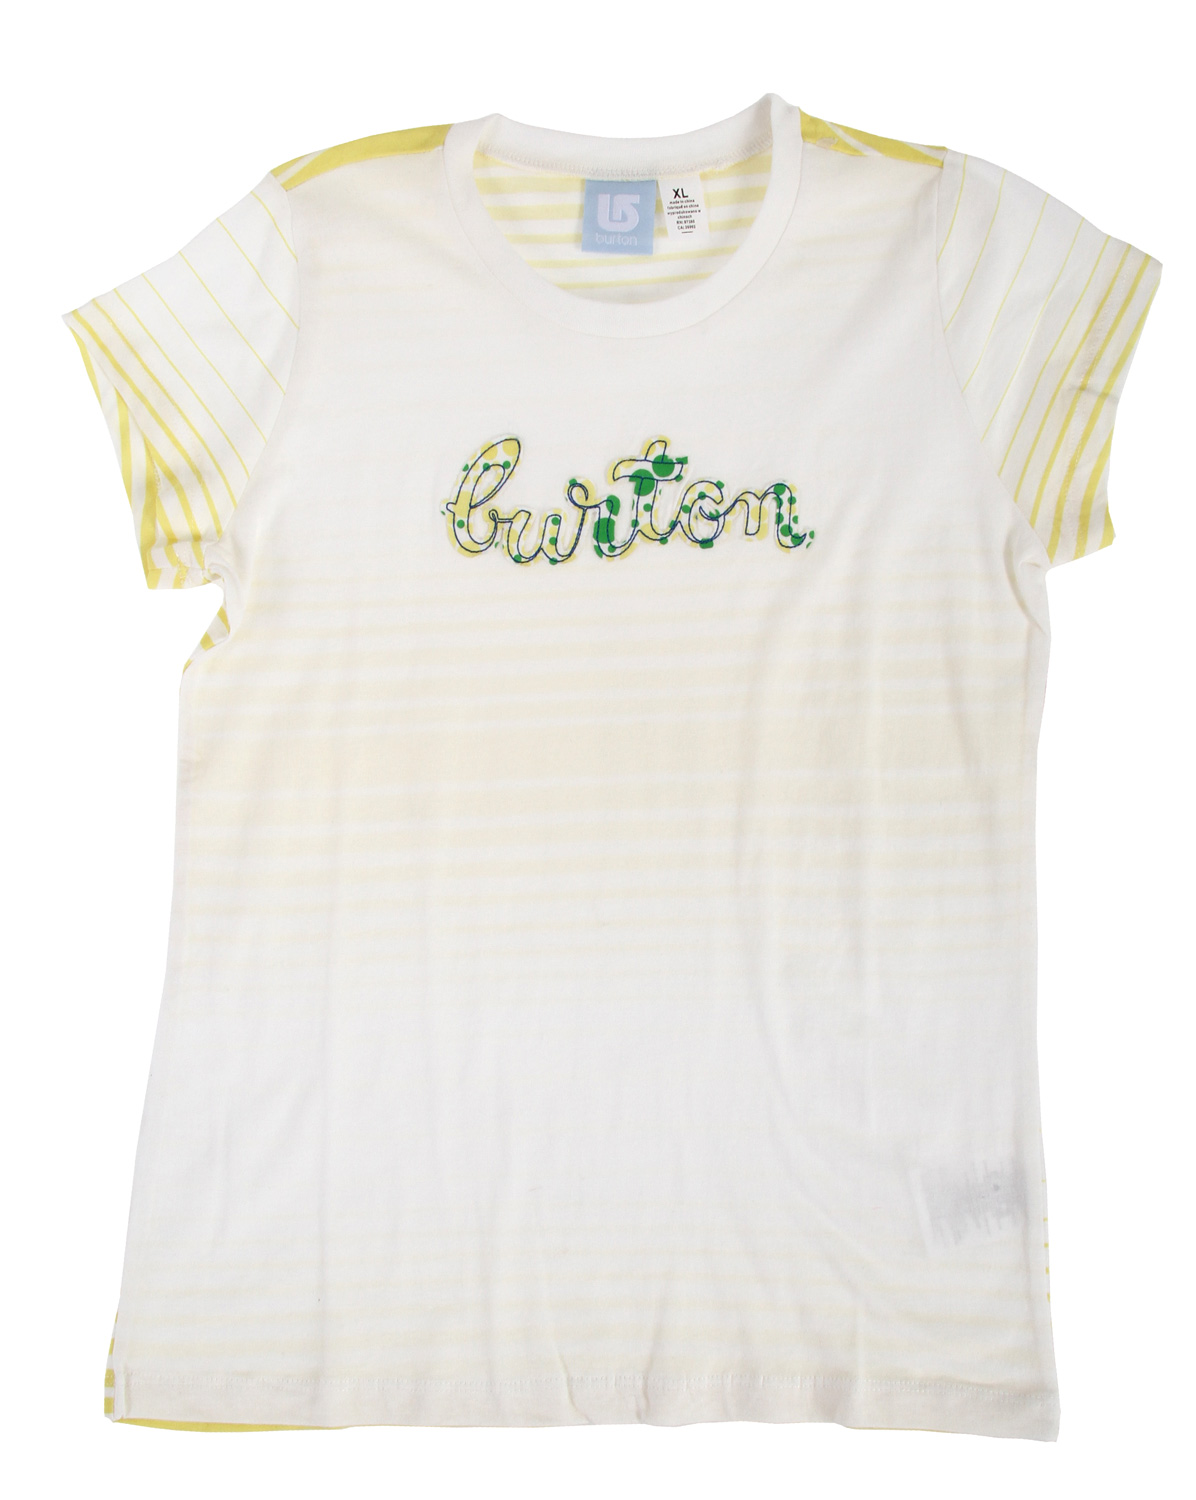 Snowboard Key Features of The Burton Peppermint T-Shirt: Regular Fit Crew Neck Short Sleeve - $6.96